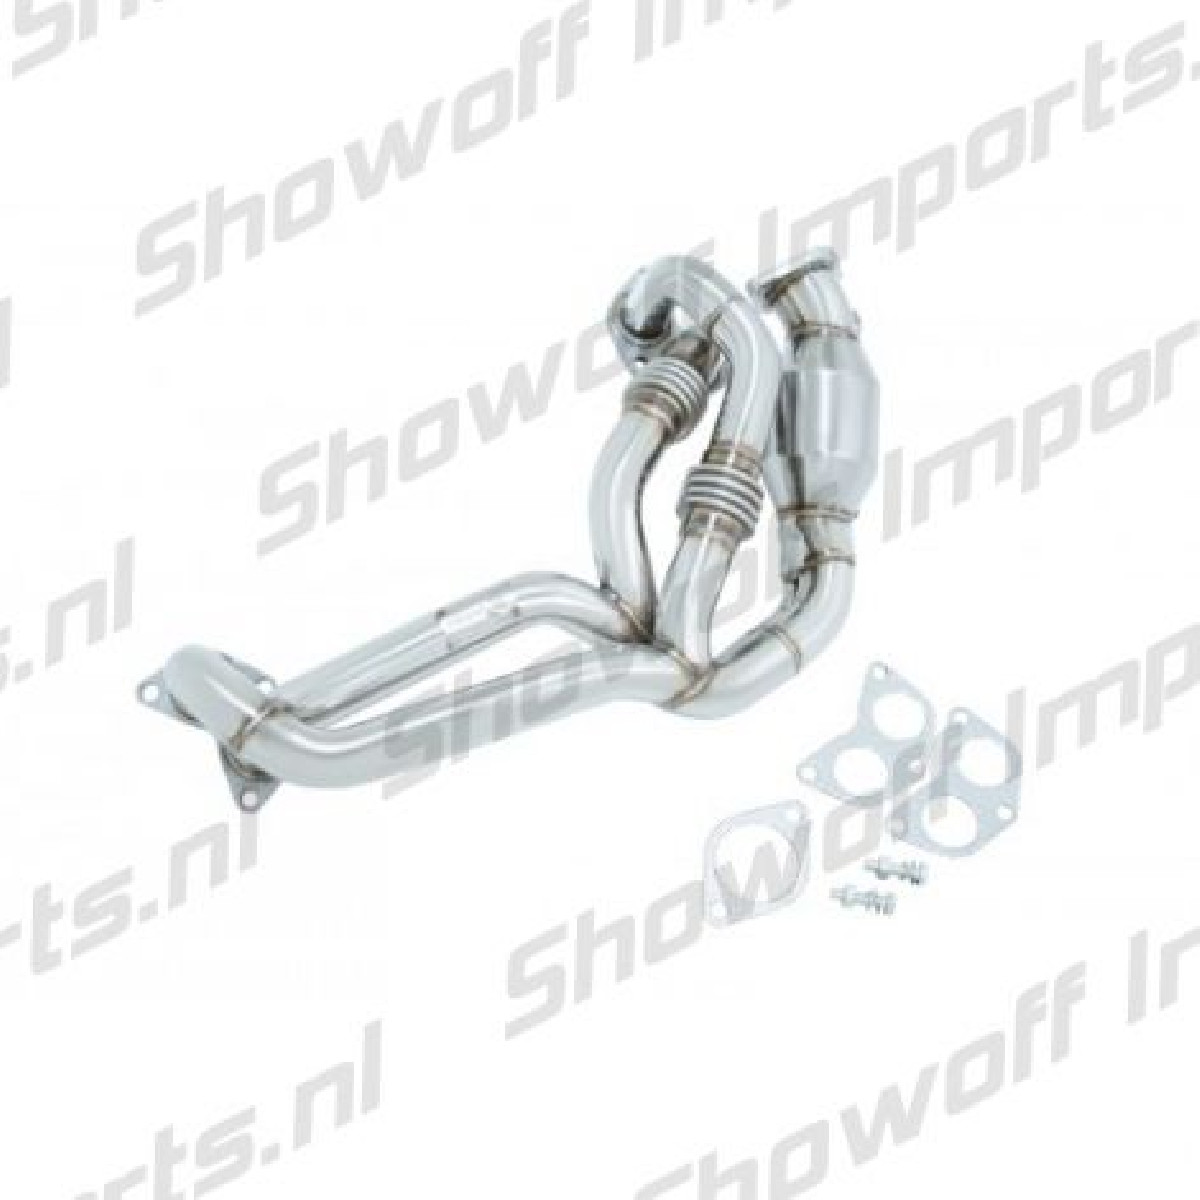 Subaru BRZ Manzo Stainless Steel Header + Cat